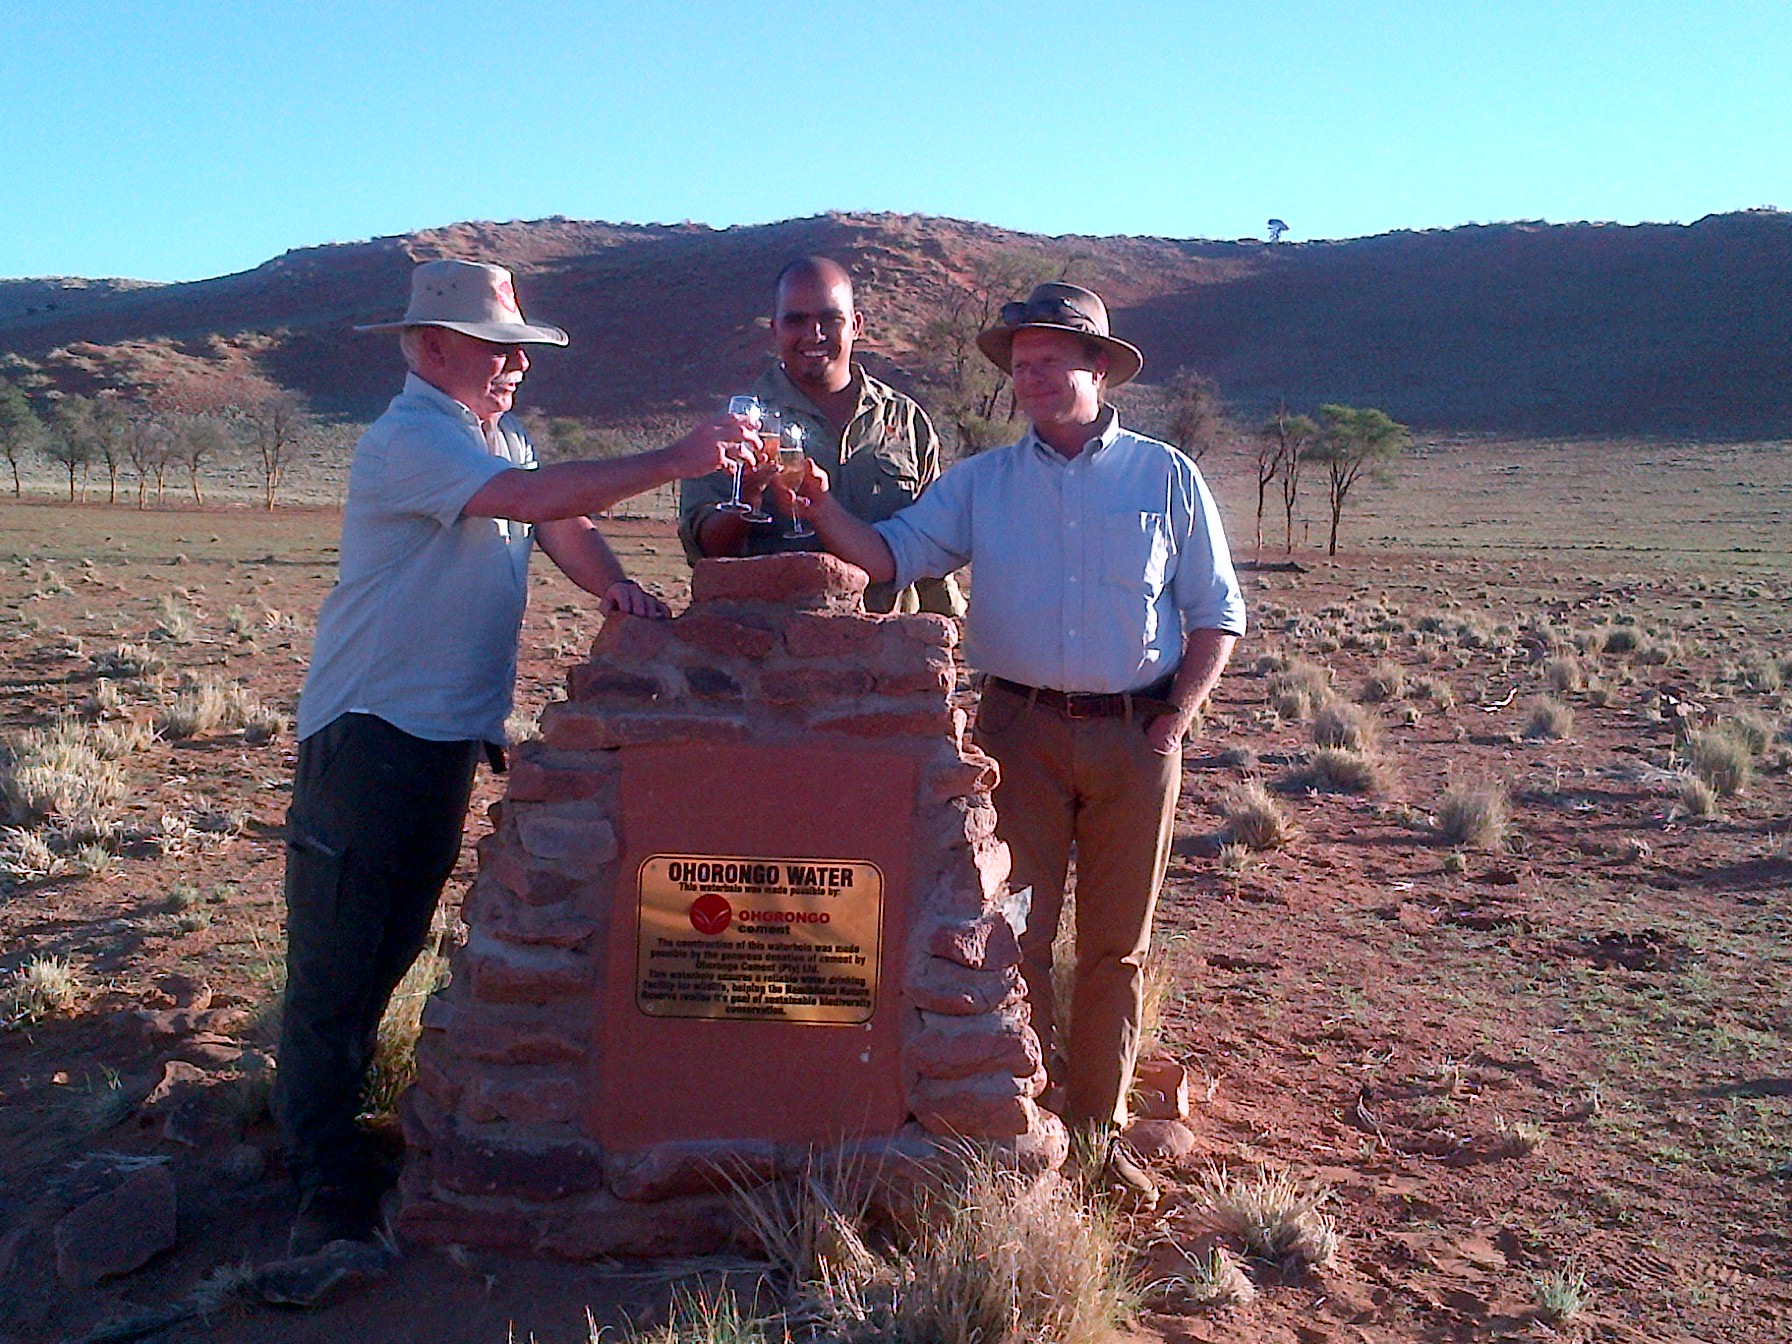 Mr Gerhard Hirth (CEO of Schwenk Zement KG), Quintin Hartung (Acting Control Warden of the NamibRand Nature Reserve) and Stephan Brueckner (MD of Wolwedans/NamibRand Nature Reserve) celebrated the new waterhole on the Reserve, proudly built with Ohorongo Cement.